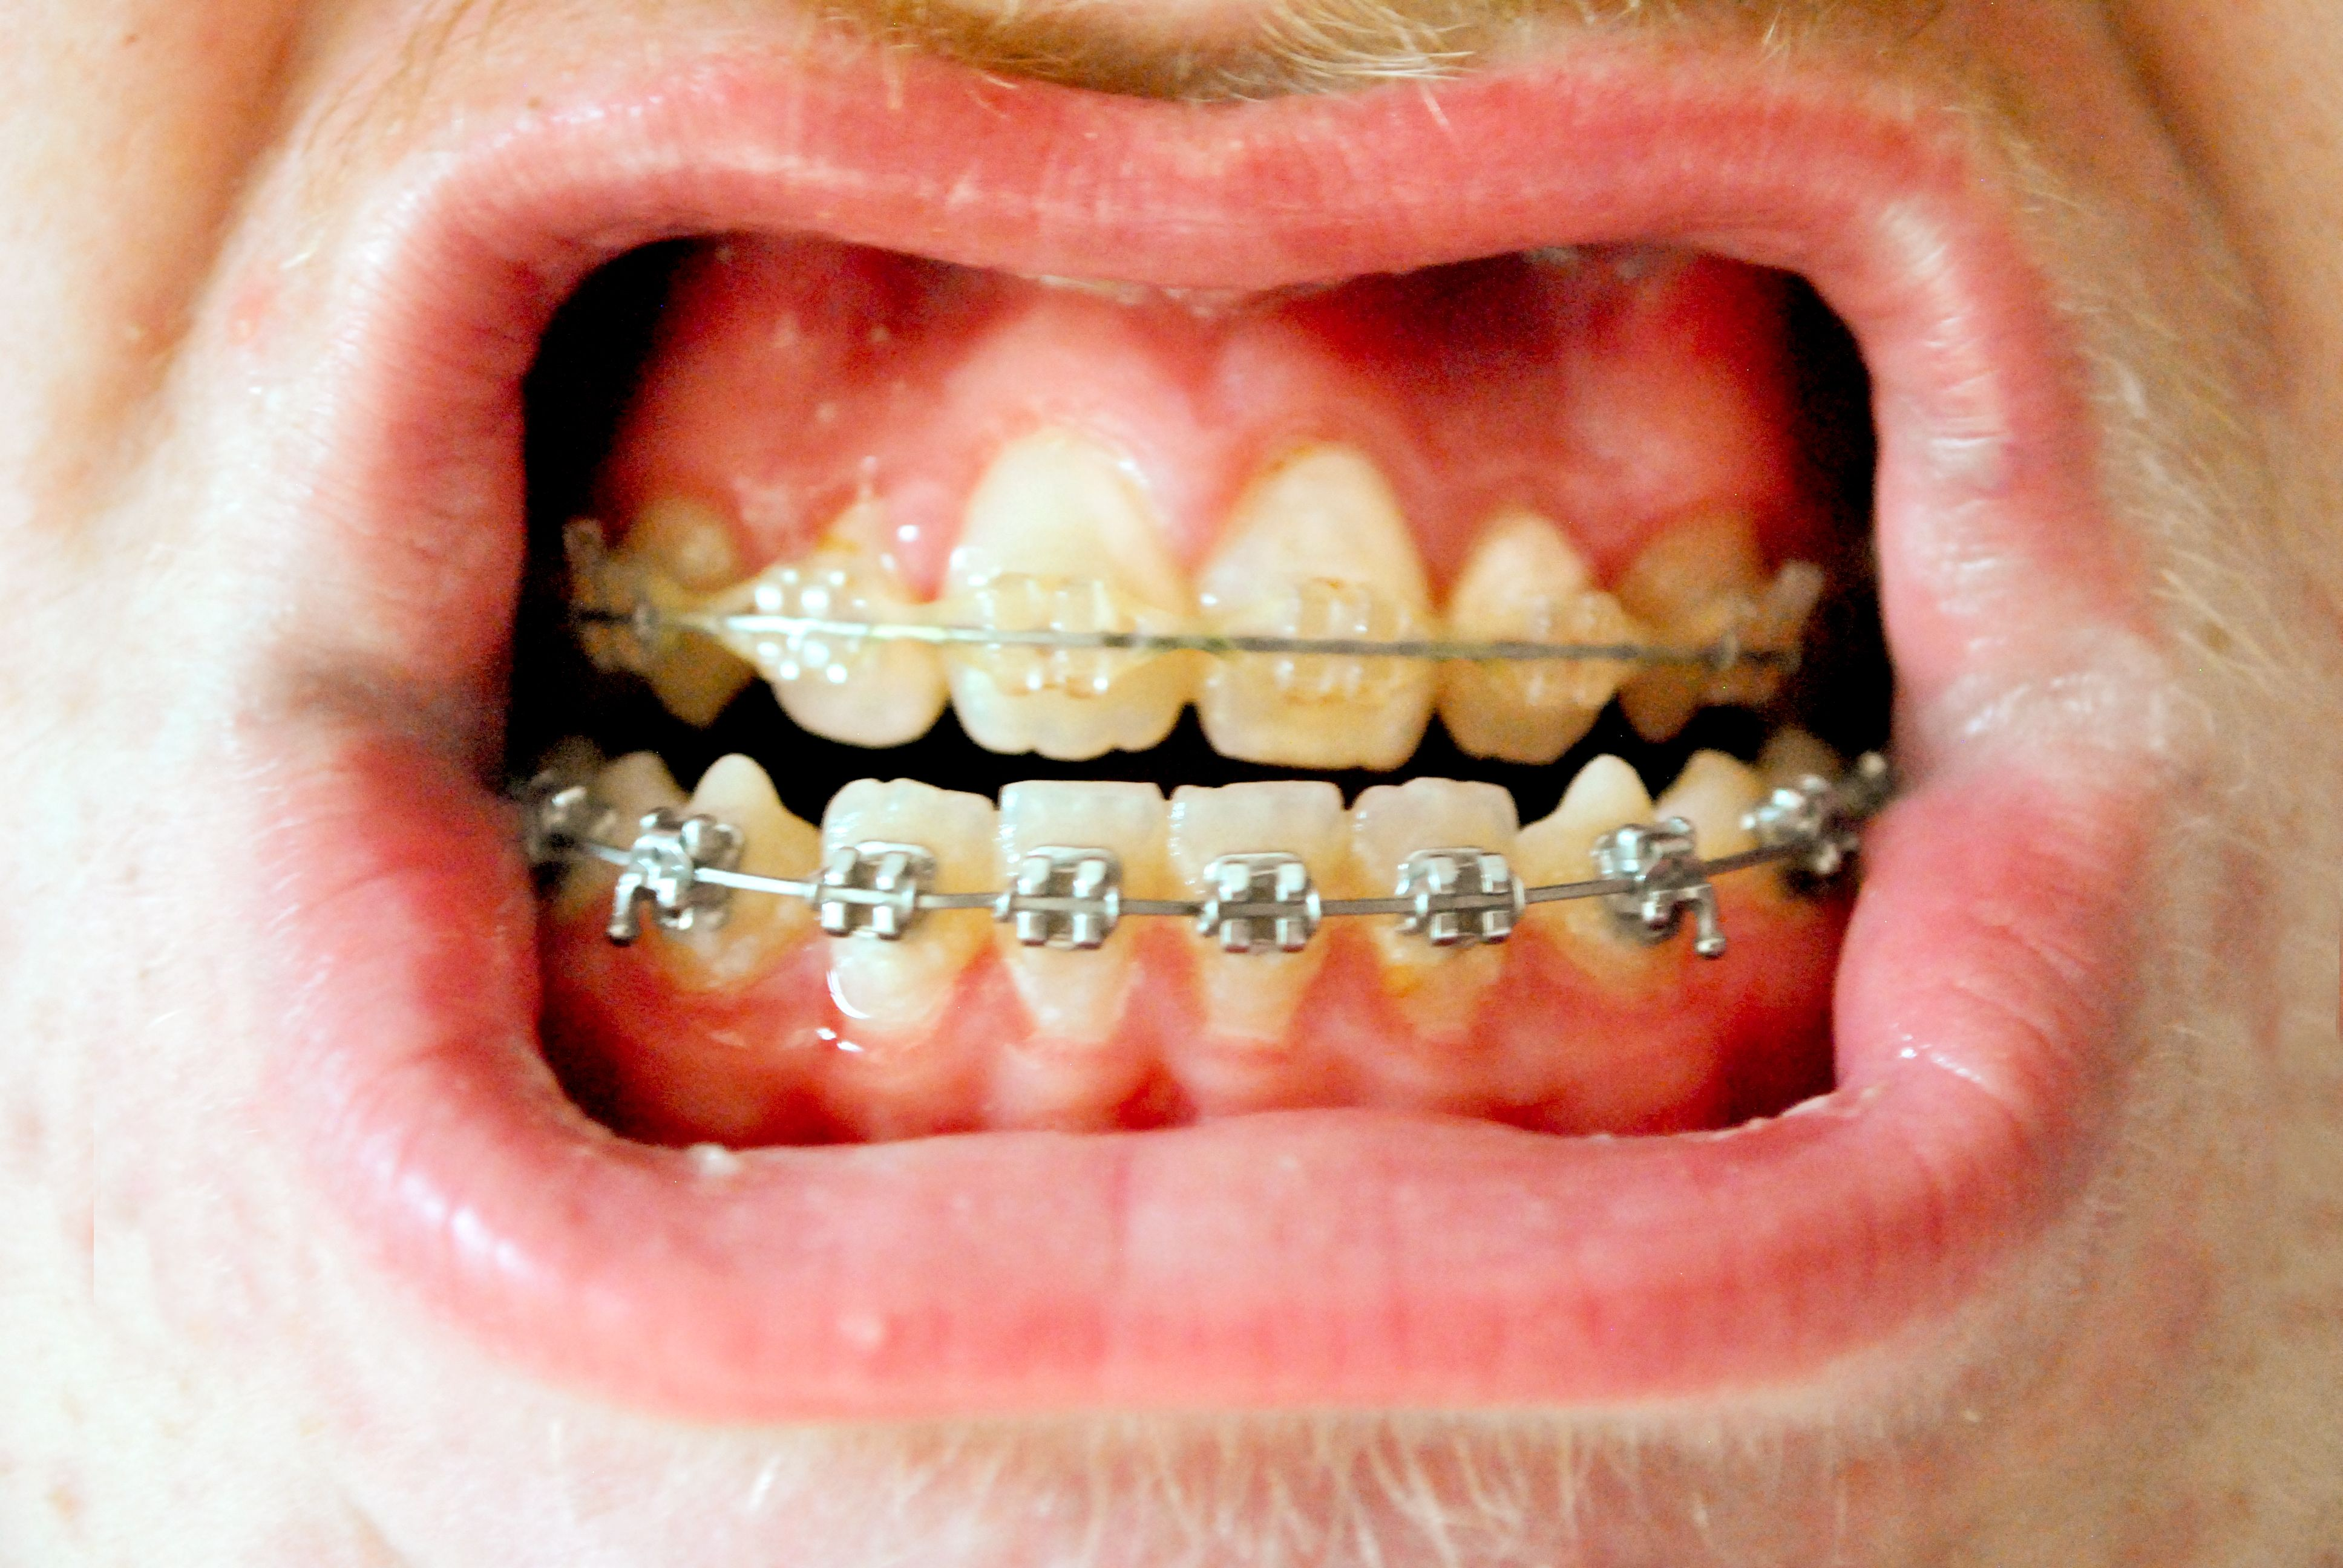 Soft Foods To Eat With New Braces